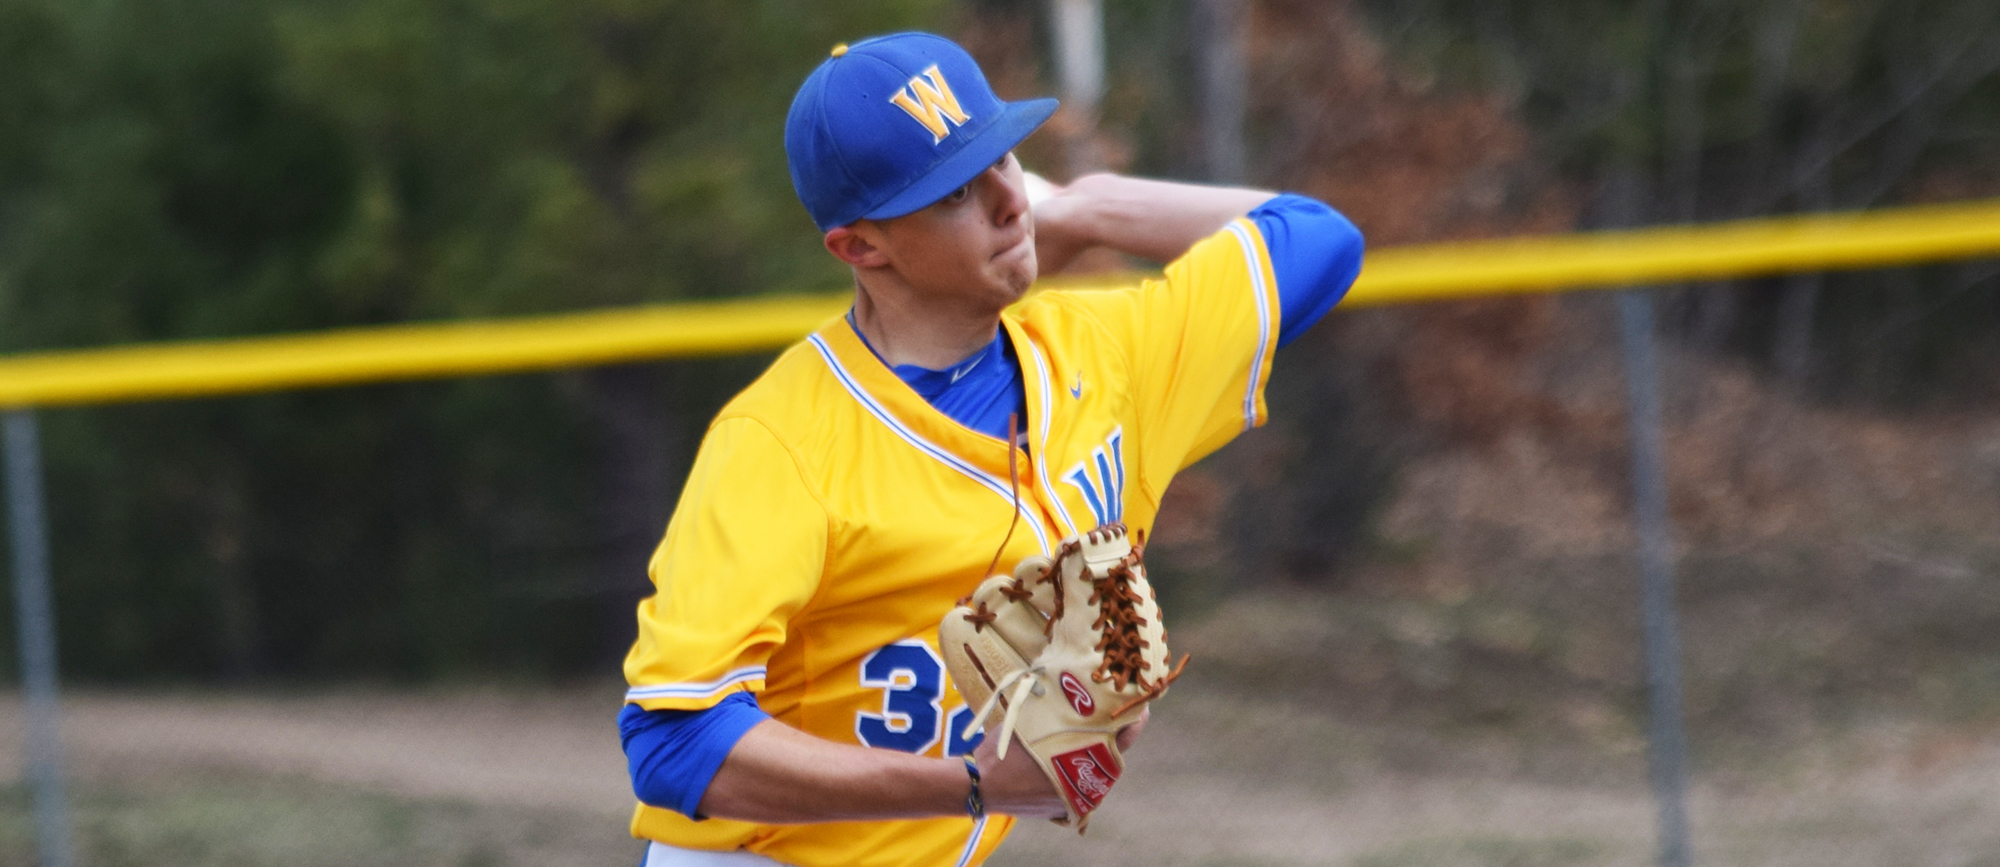 Junior lefty Bob Hamel allowed one run during a complete game victory in the opener as the Golden Bears split a CCC doubleheader with Endicott on Saturday.